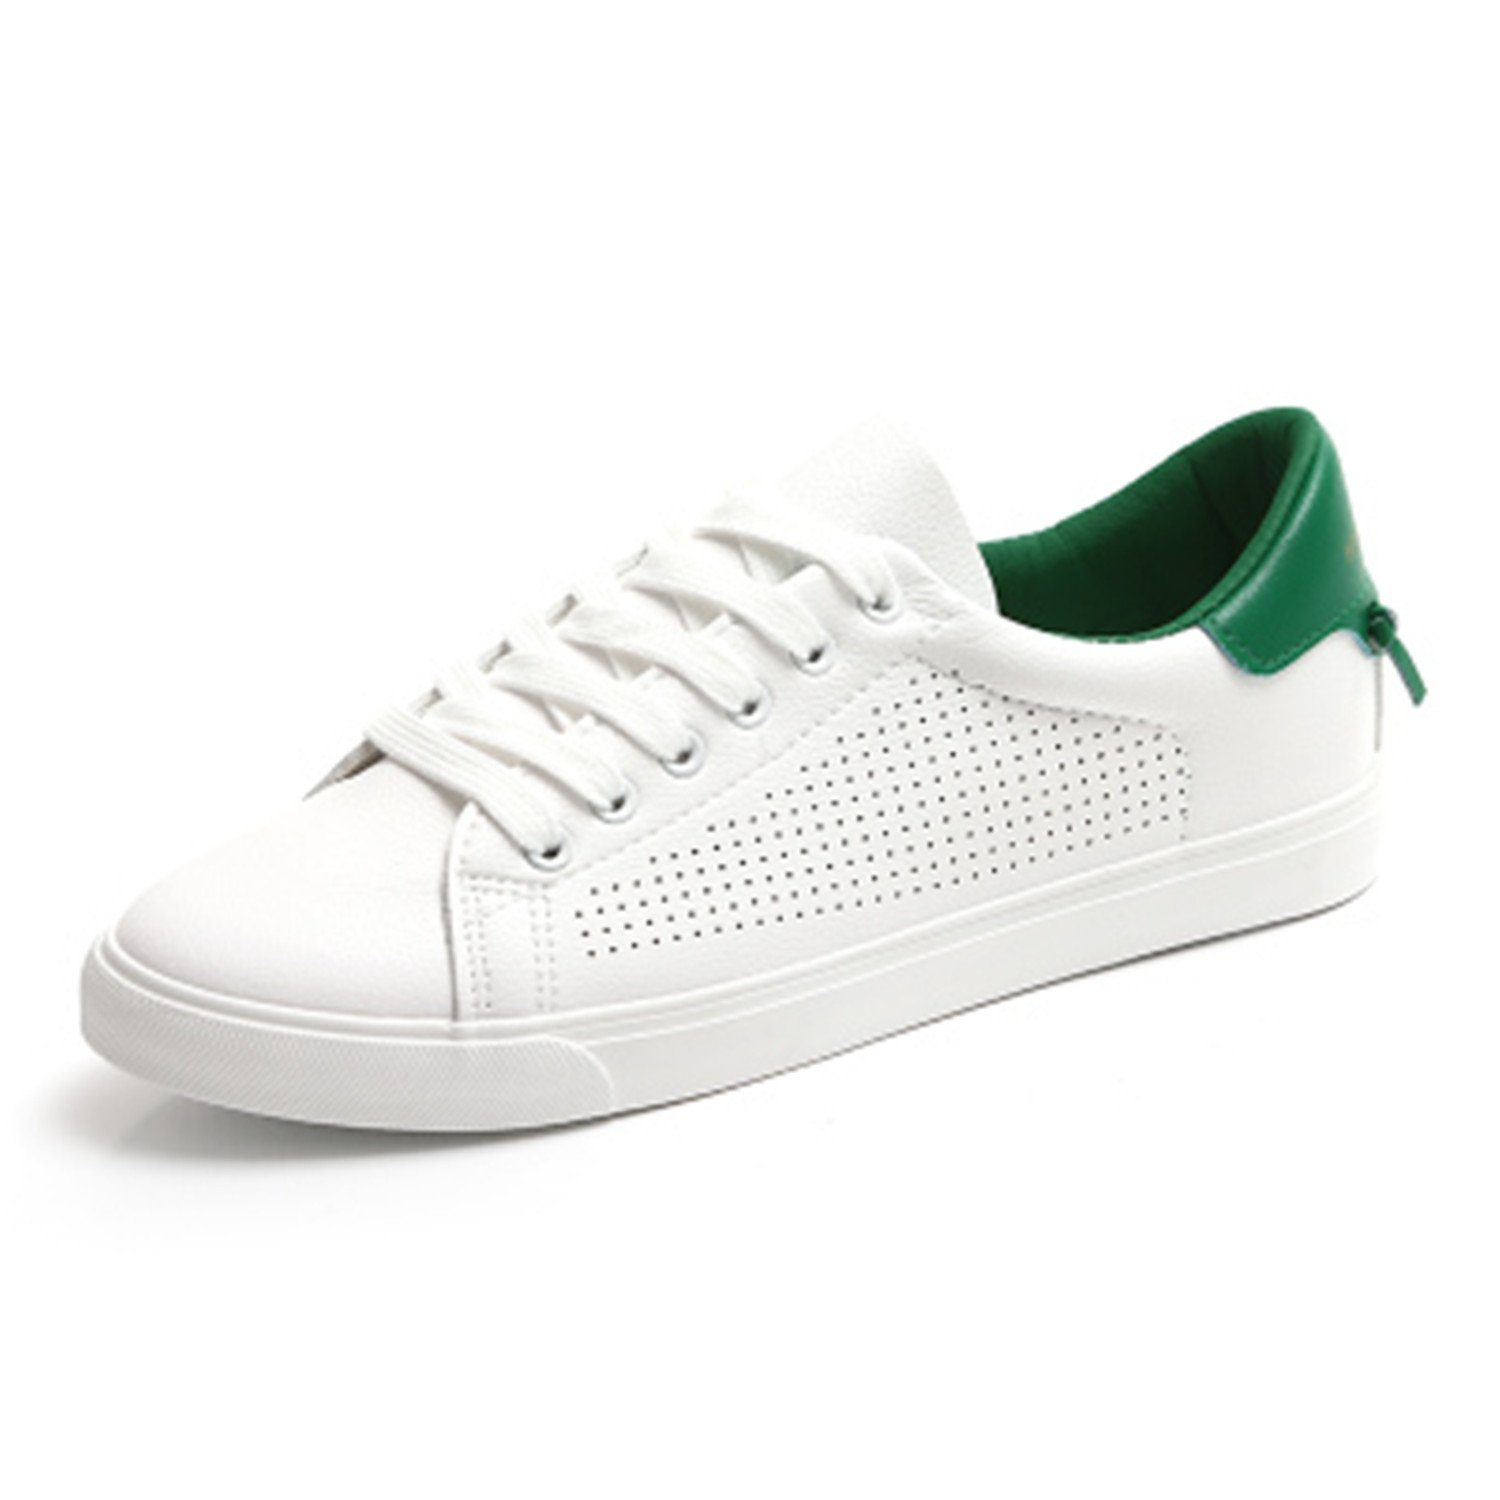 b5ad86a1e0da Better Annie Women White Shoes With Holes Leather Famous Brand Female  Casual Shoes Tails New Fashion